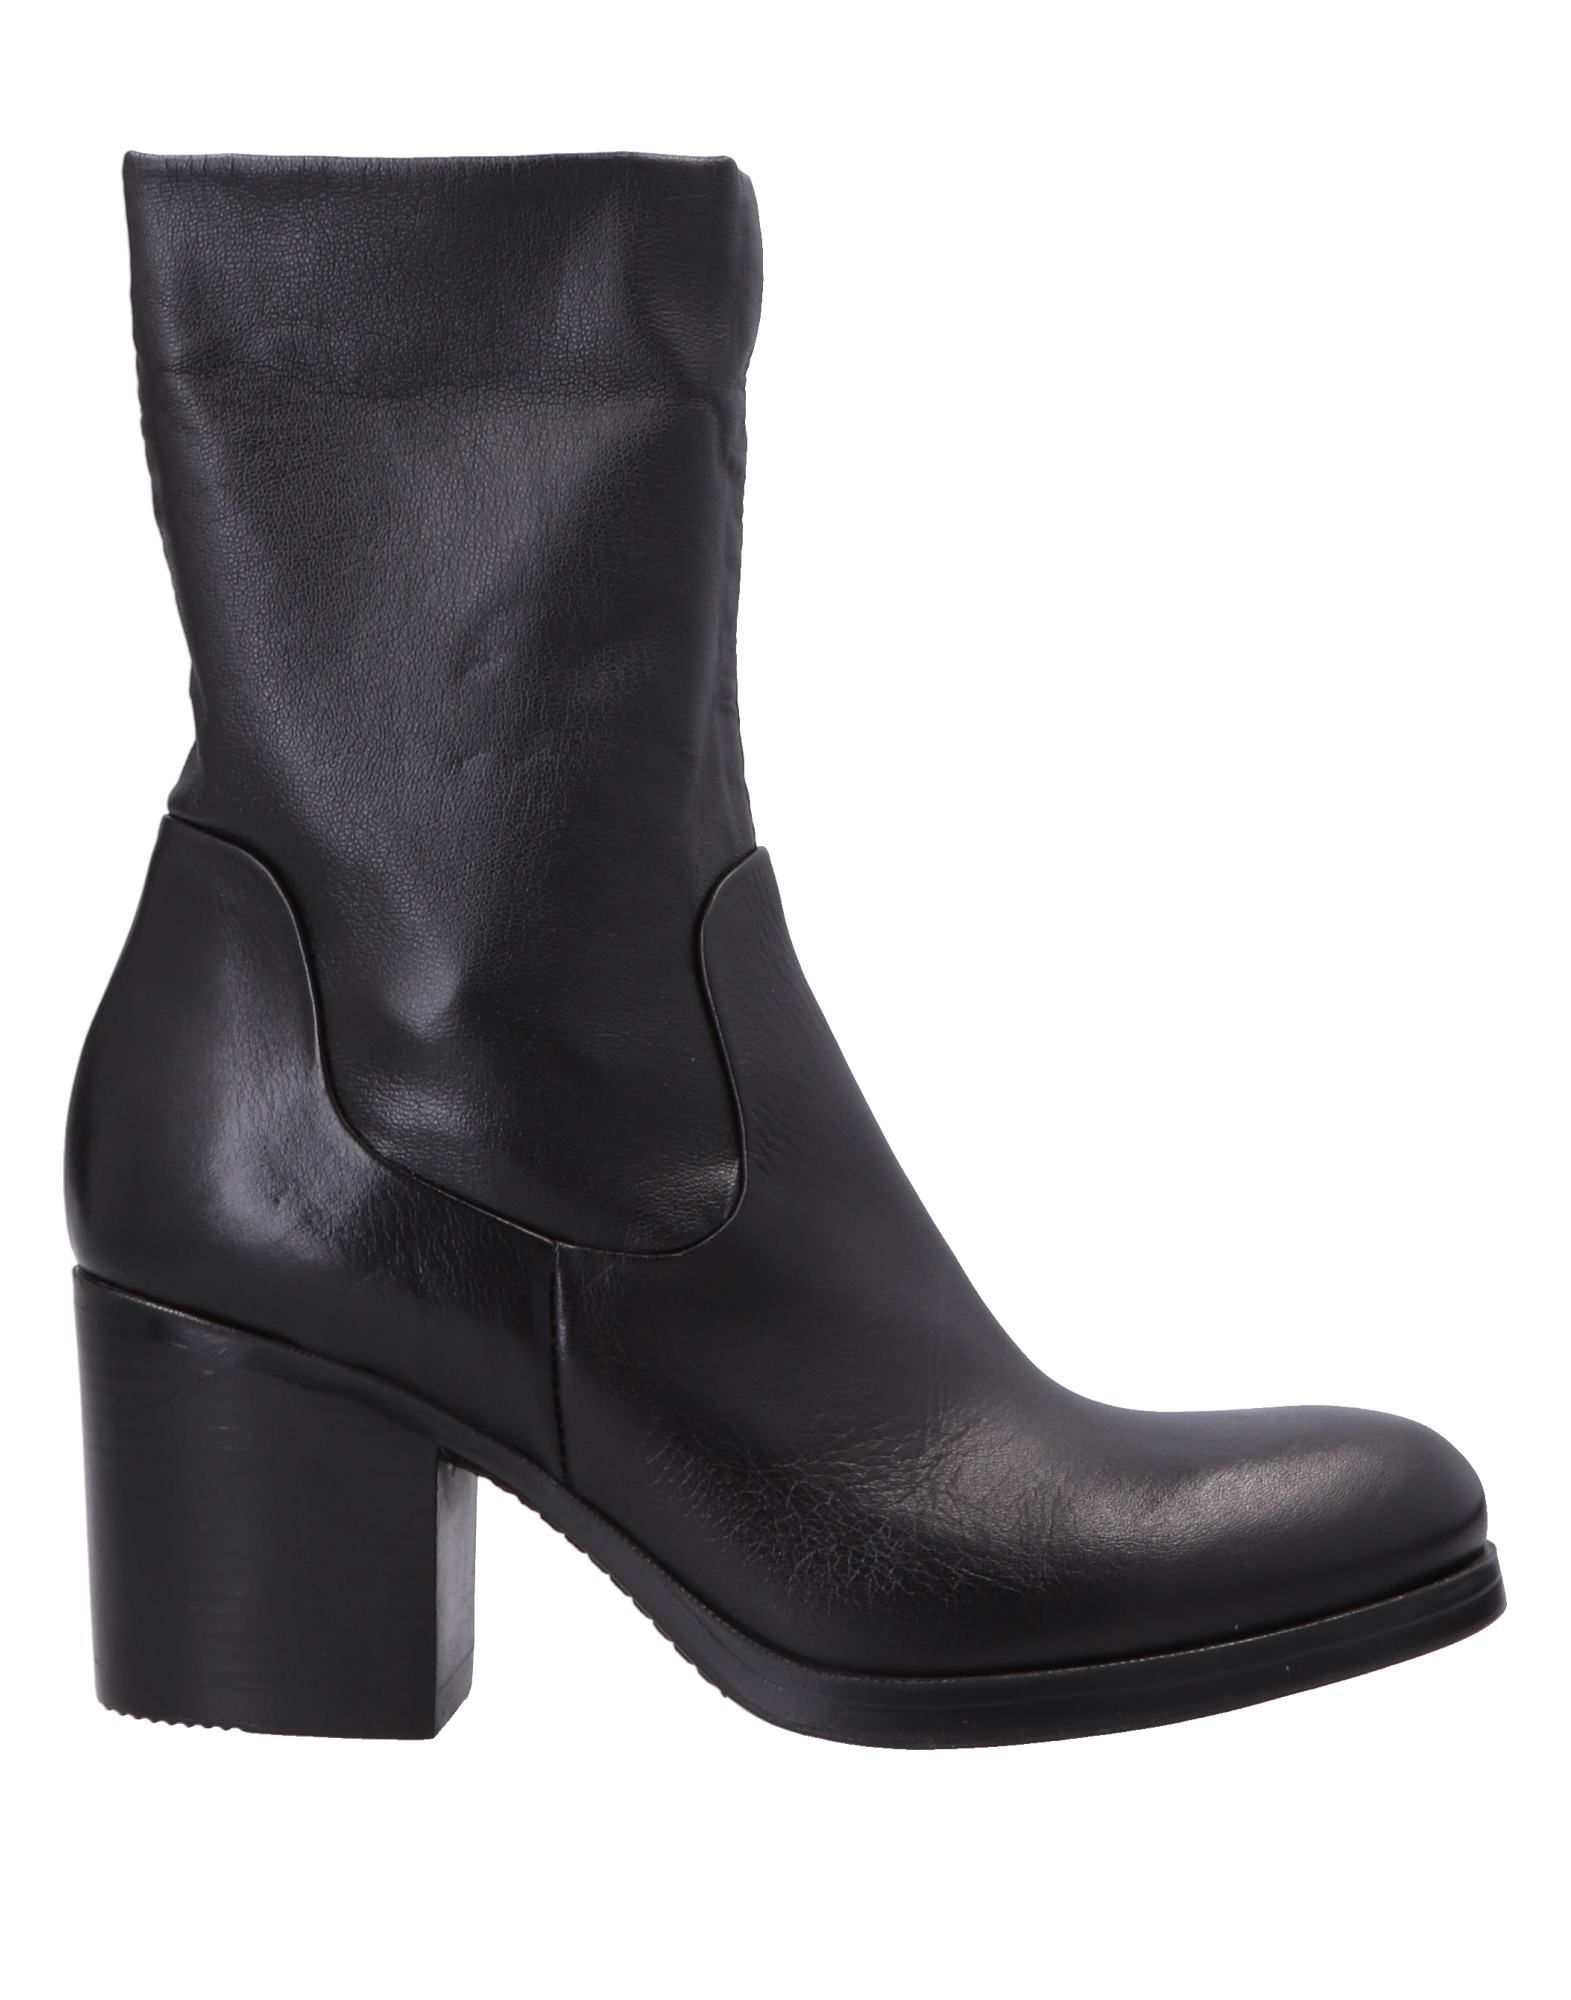 Jfk Ankle Boot - Women Jfk Ankle Boots on online on Boots  United Kingdom - 11545853VS 76a233